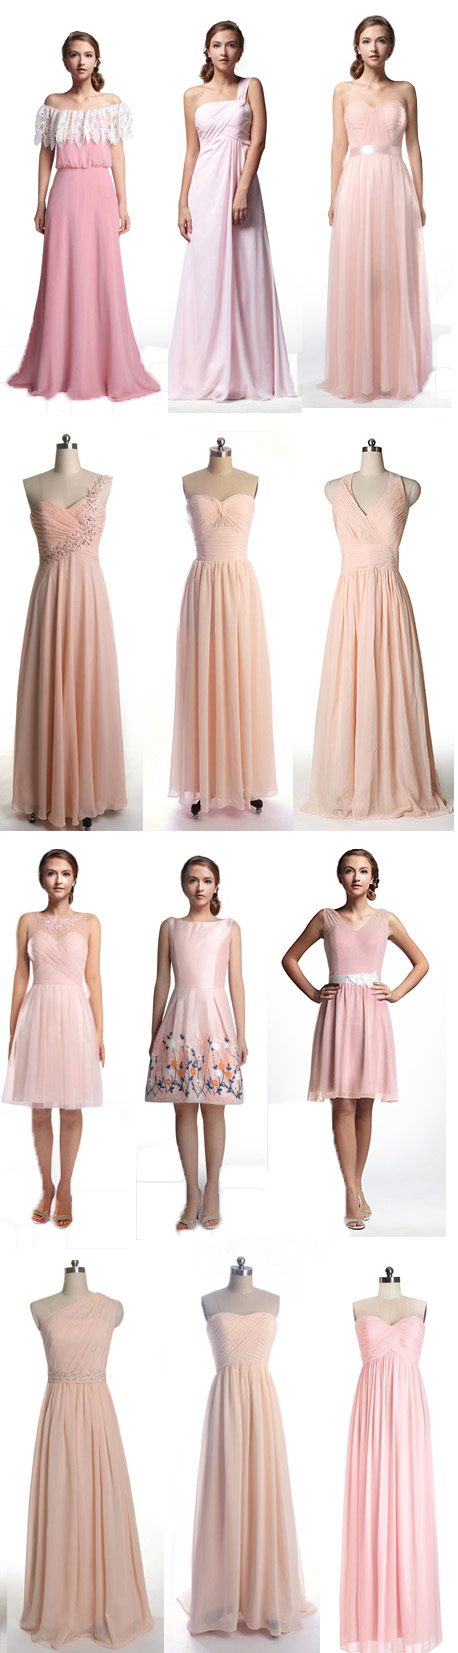 Pink Bridesmaid Dresses Blush Peach Gowns At Tulleandchantilly